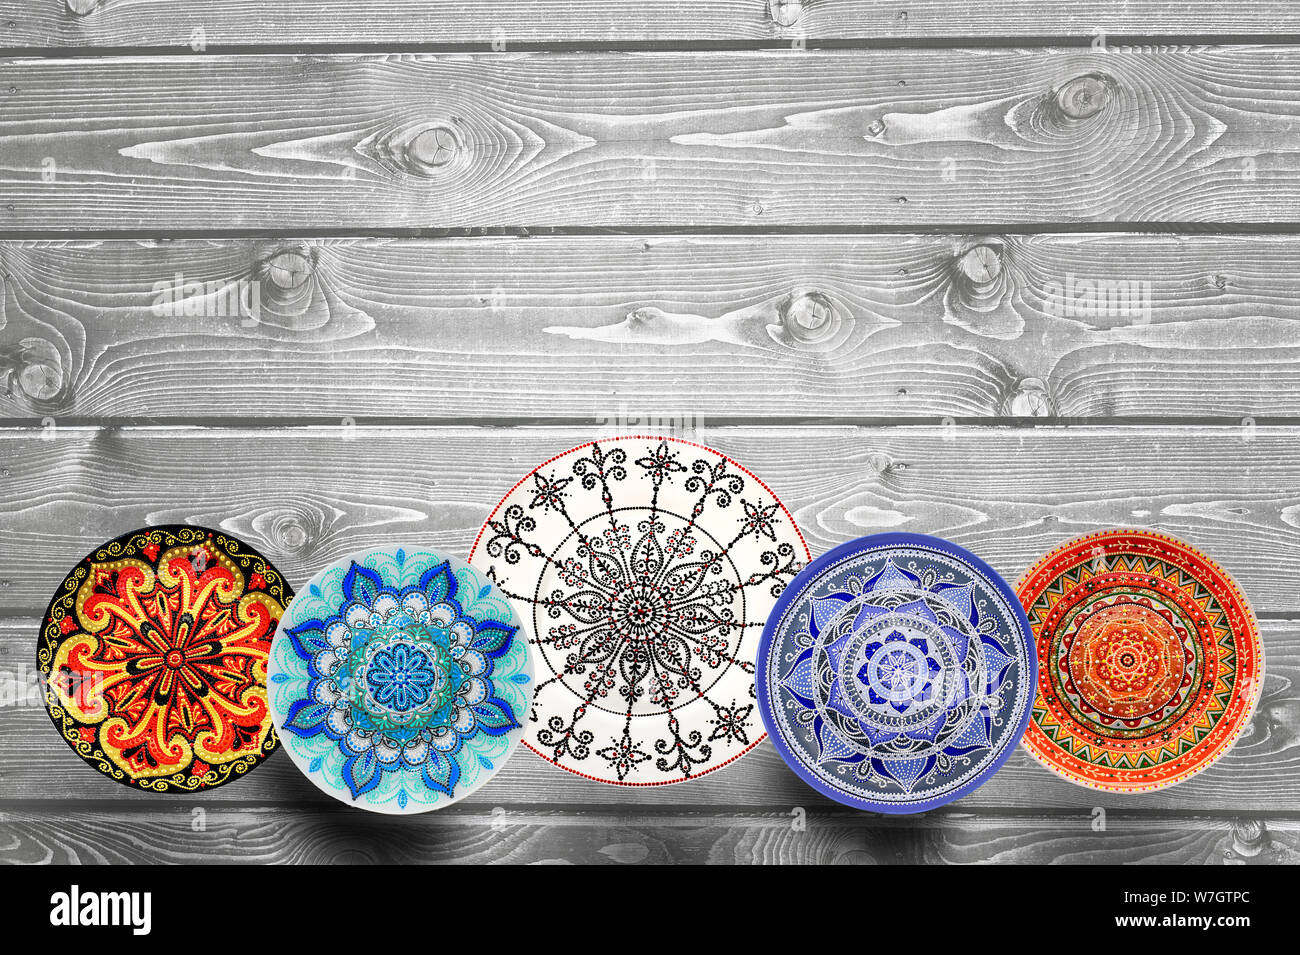 Set Of Decorative Ceramic Plates Hand Painted With Acrylic